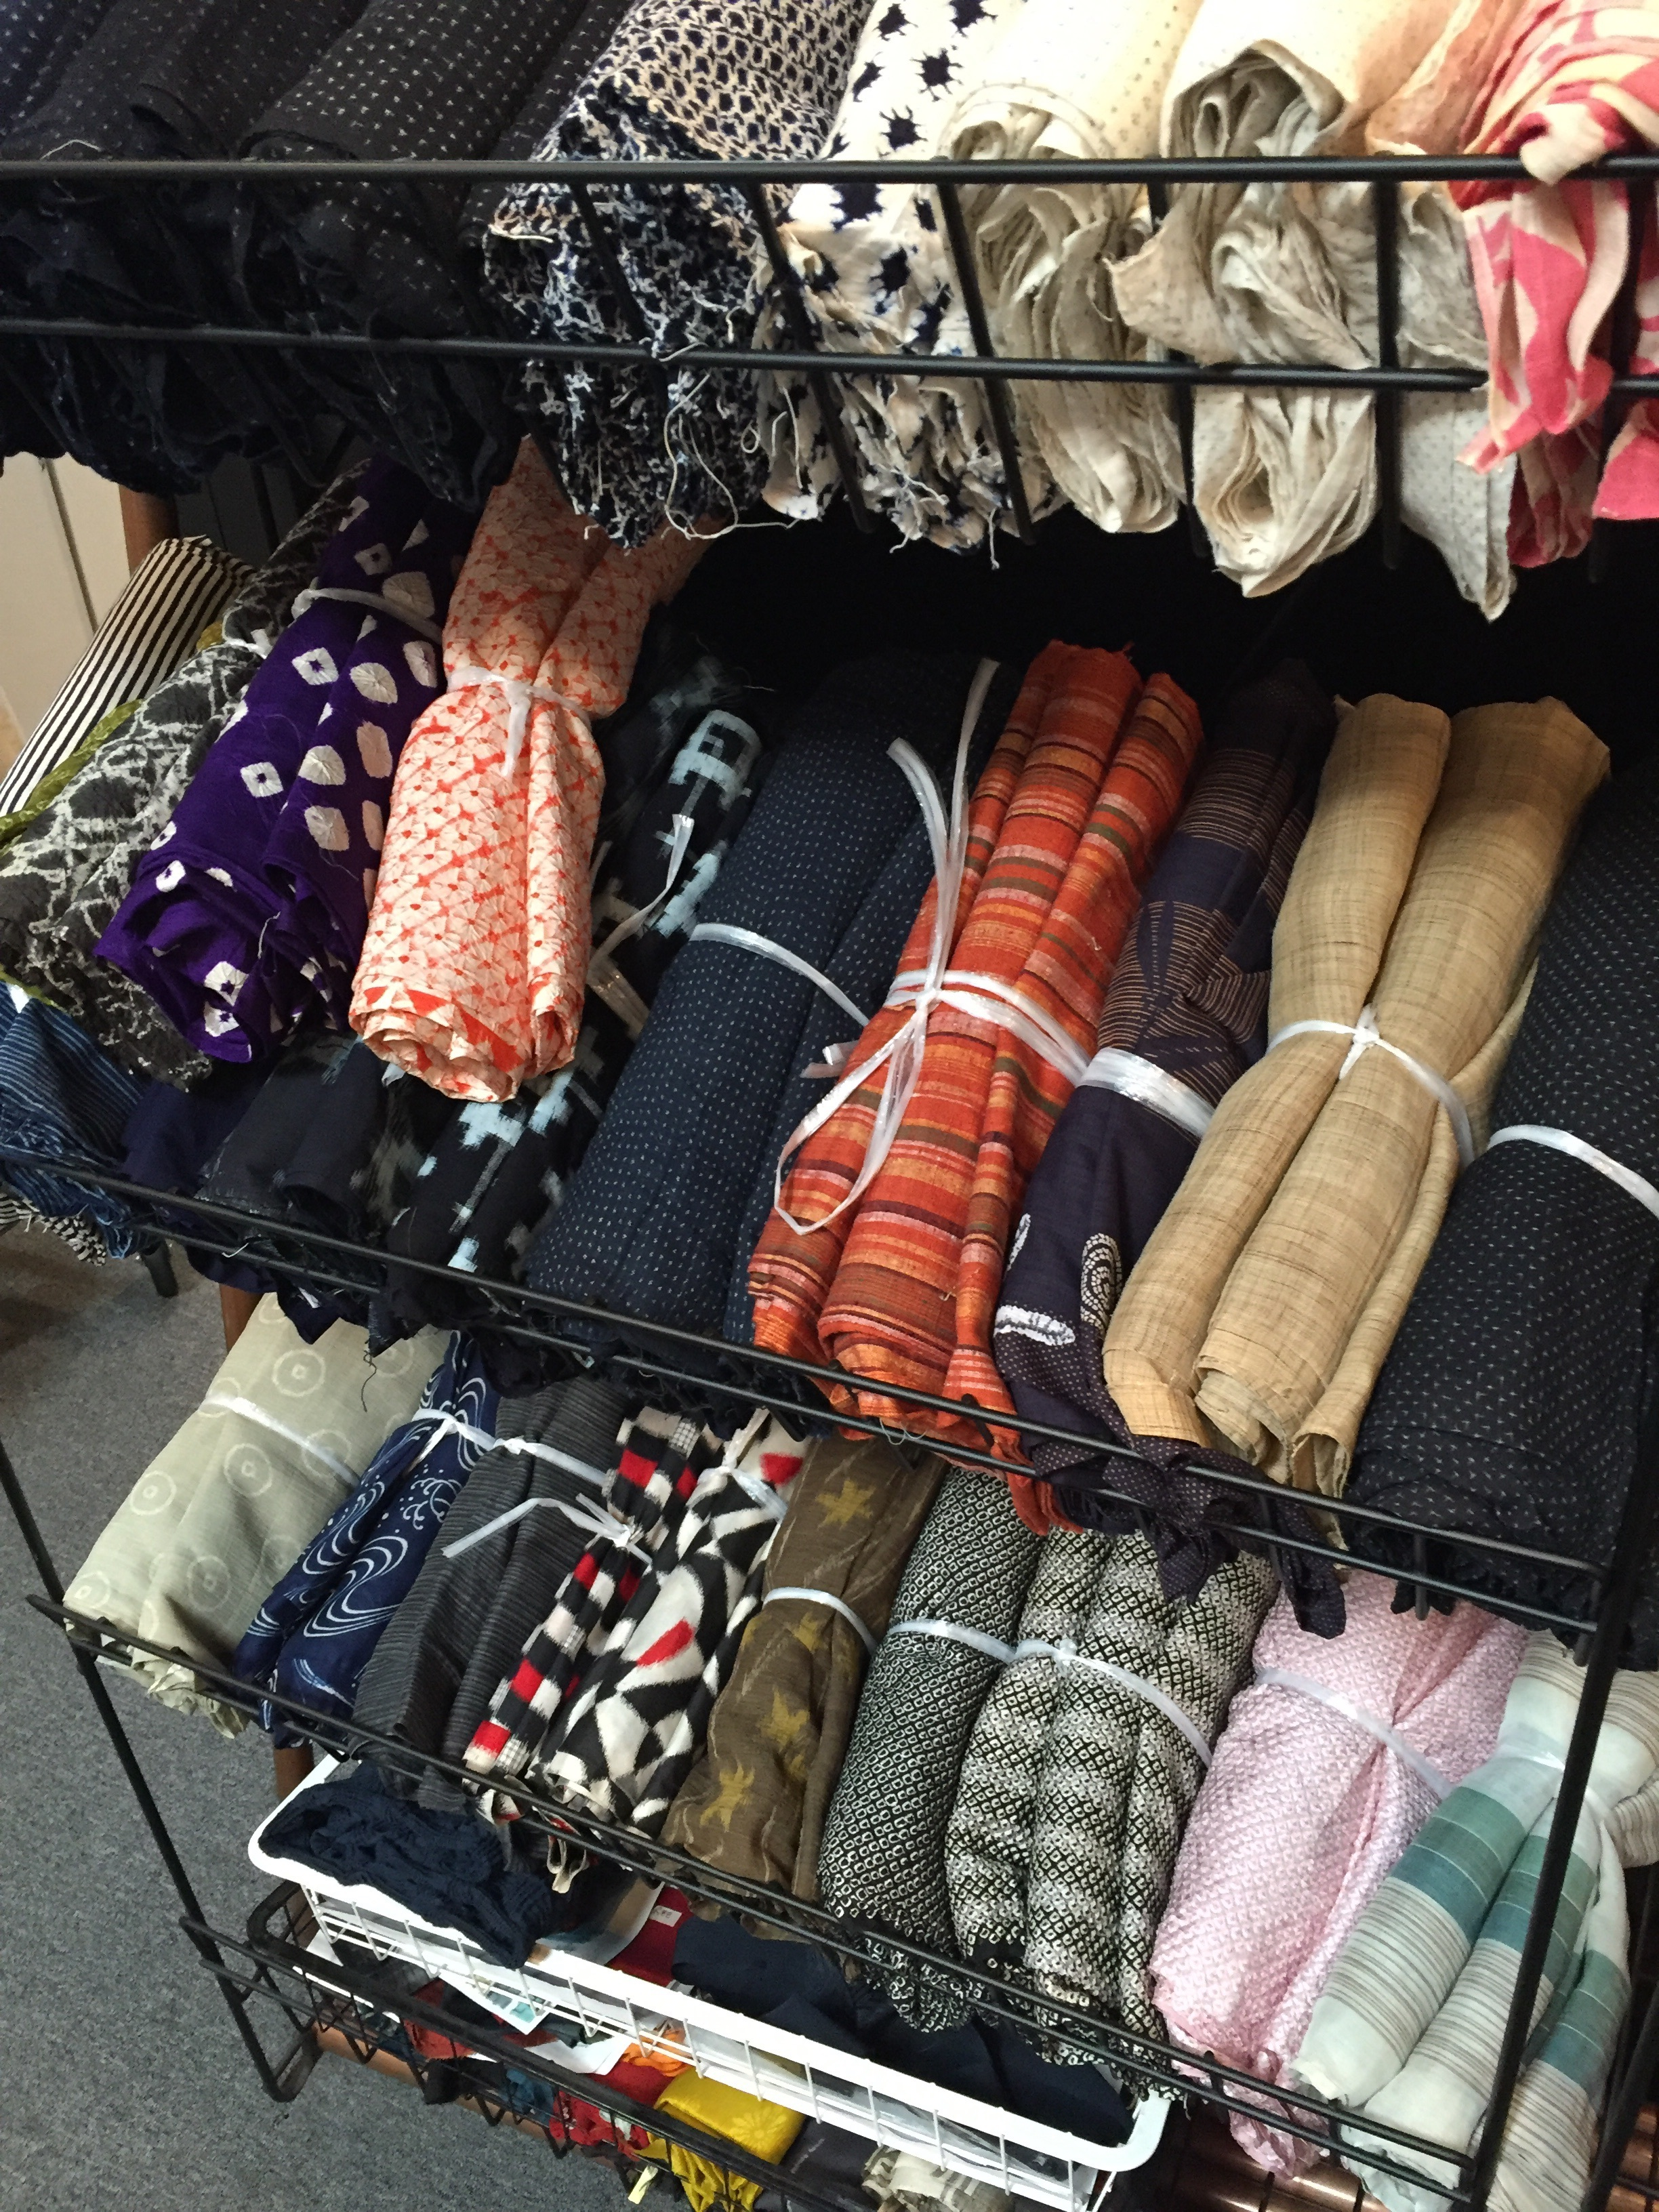 Spring vintage fabric possibilities awaiting inspection.